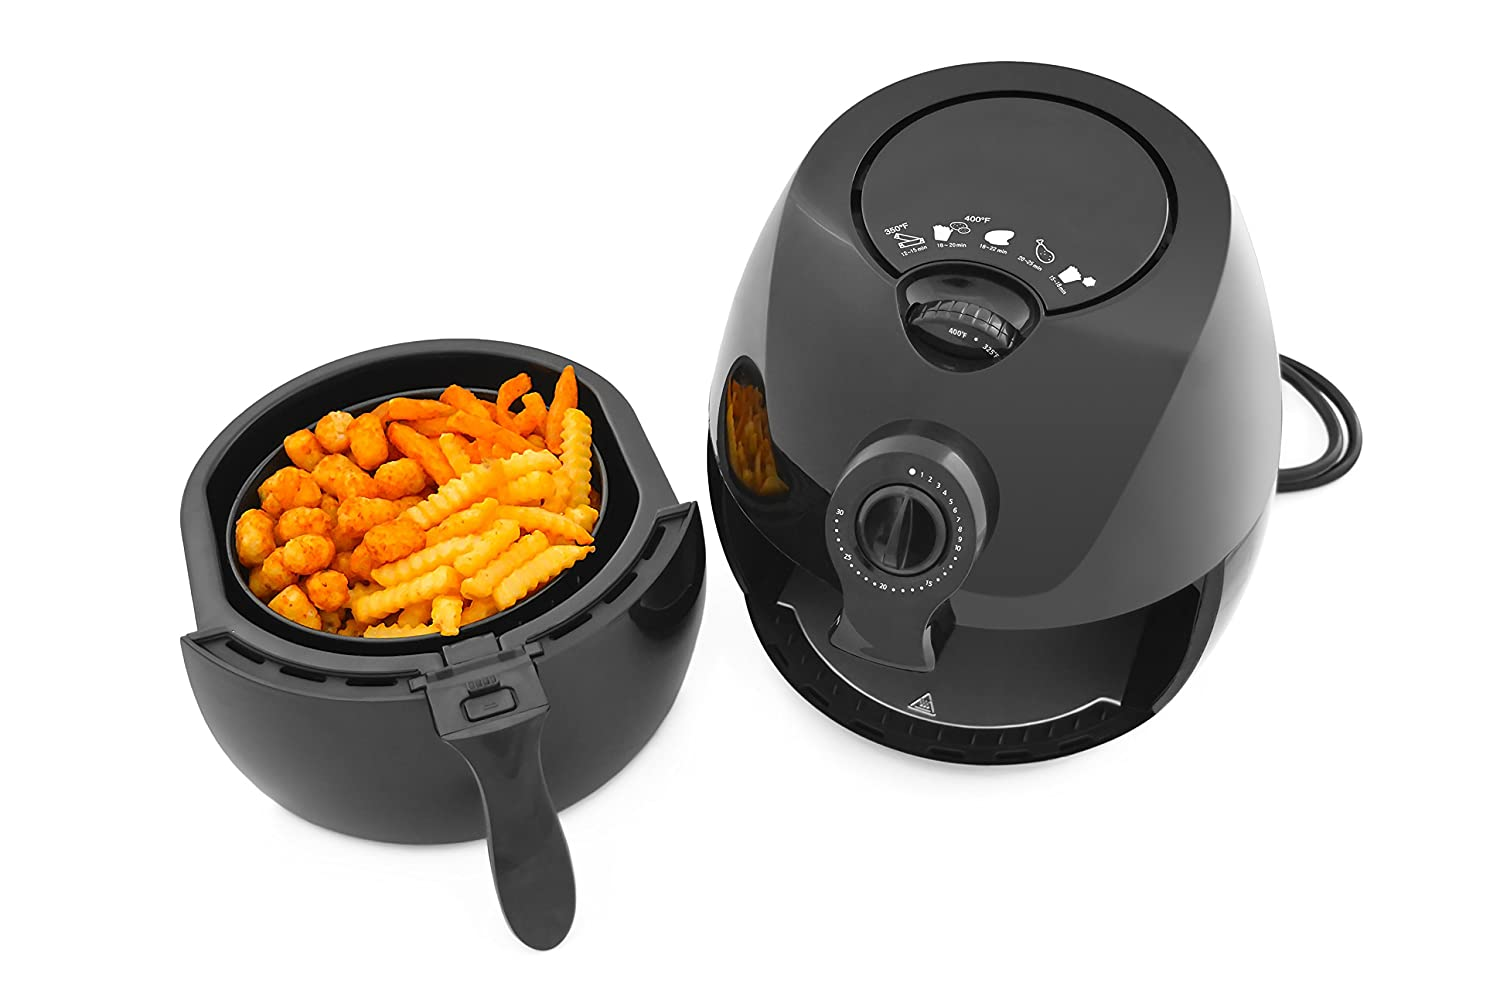 are-there-any-major-disadvantages-of-dry-frying-through-an-air-fryer-6